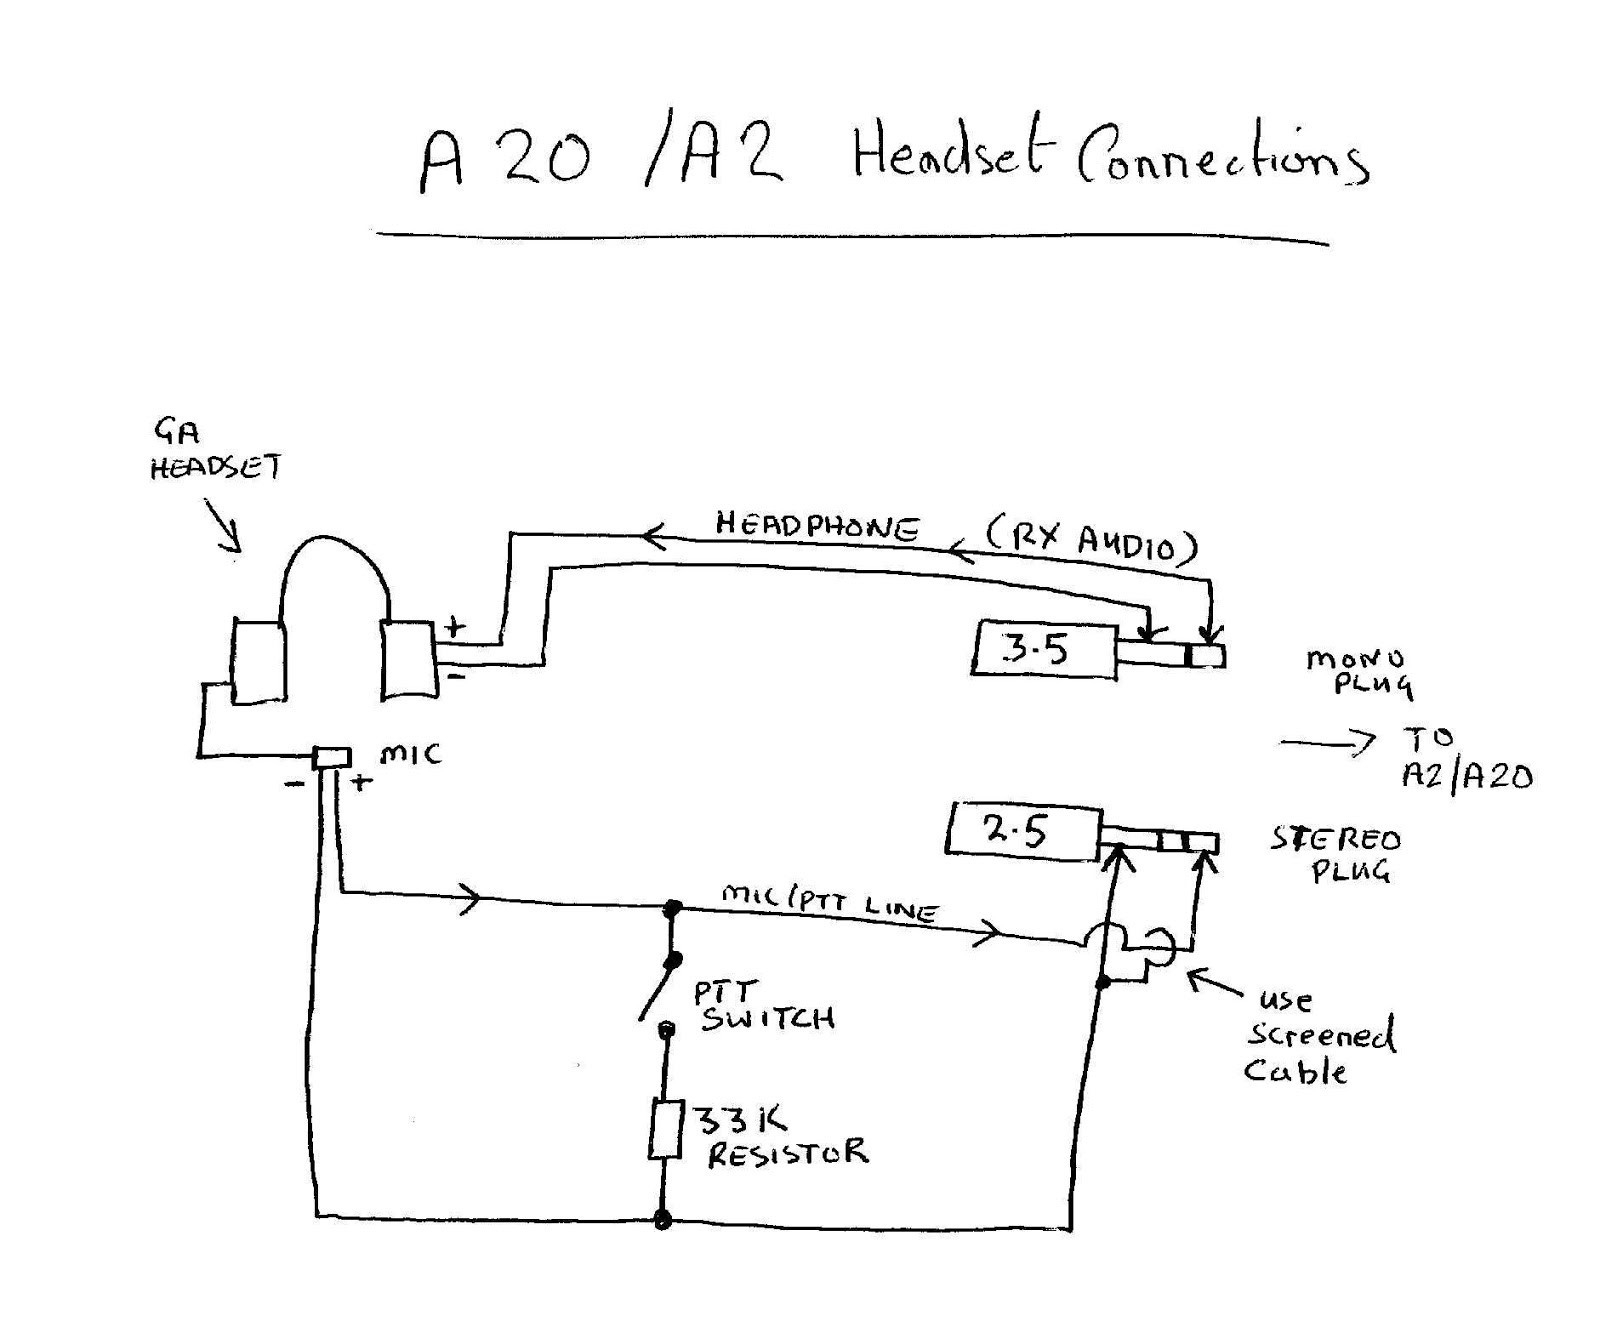 bose a20 wiring diagram Collection-Kenwood Microphone Wiring Diagram New Luxury Headphone With Mic Wiring Diagram Wiring 4-j